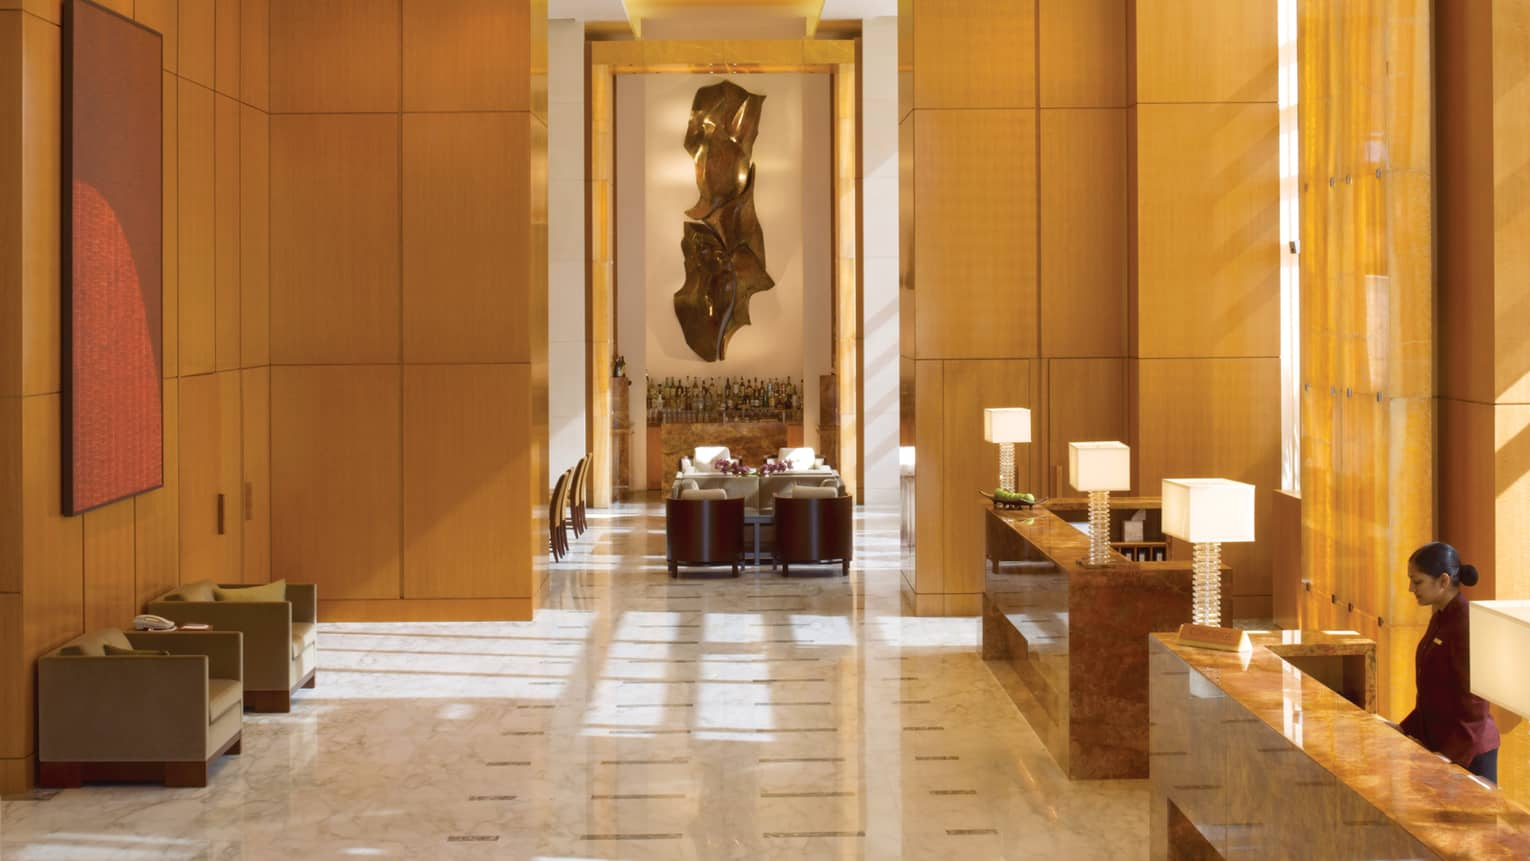 Hotel lobby with soaring ceilings over wood panel walls, marble floors, reception desks